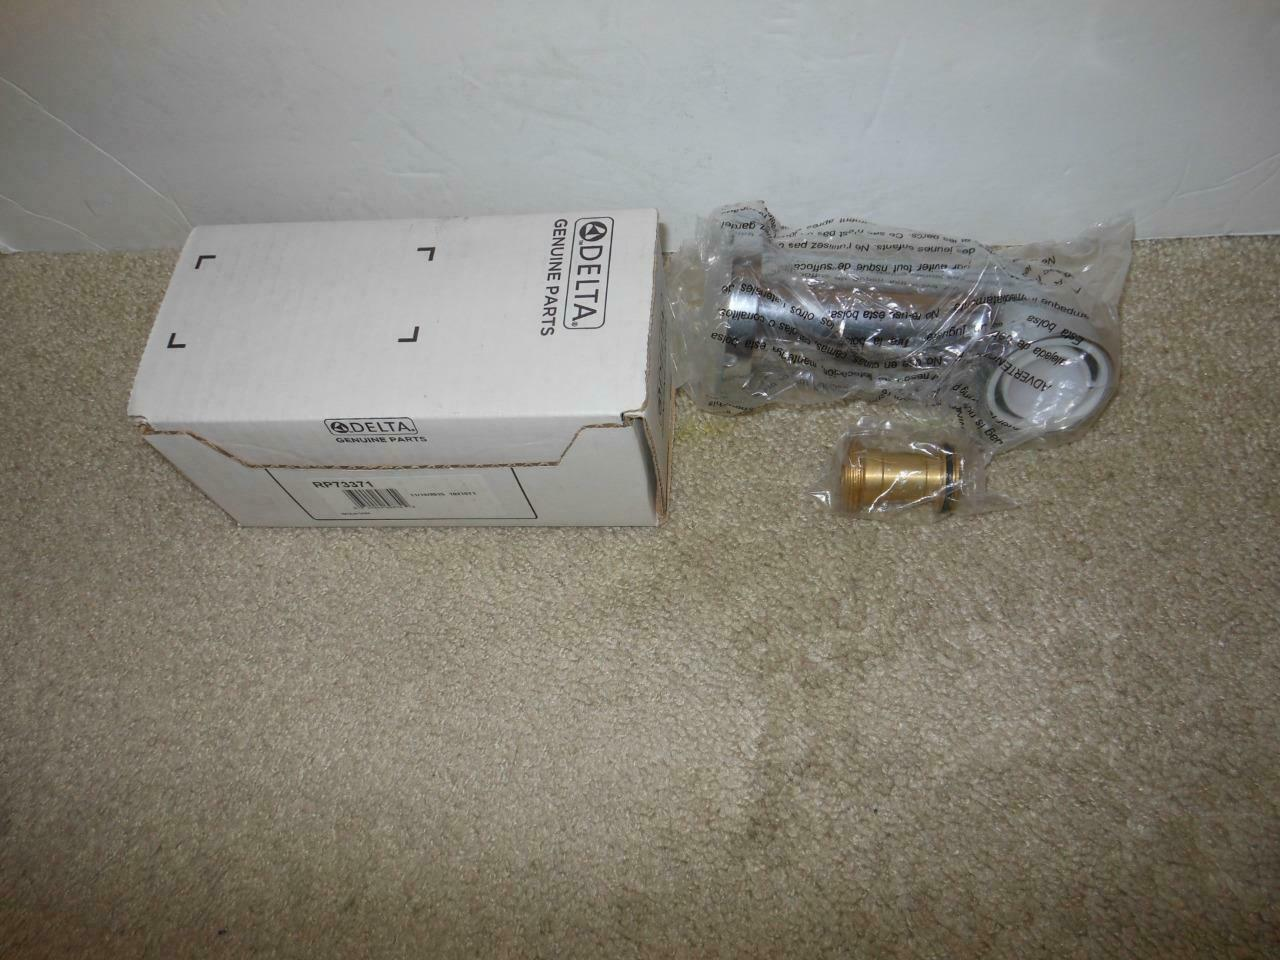 New Delta Chrome Rp73371 Wall Mounted Bathtub Fawcet Spout In Original Box Tub For Sale Online